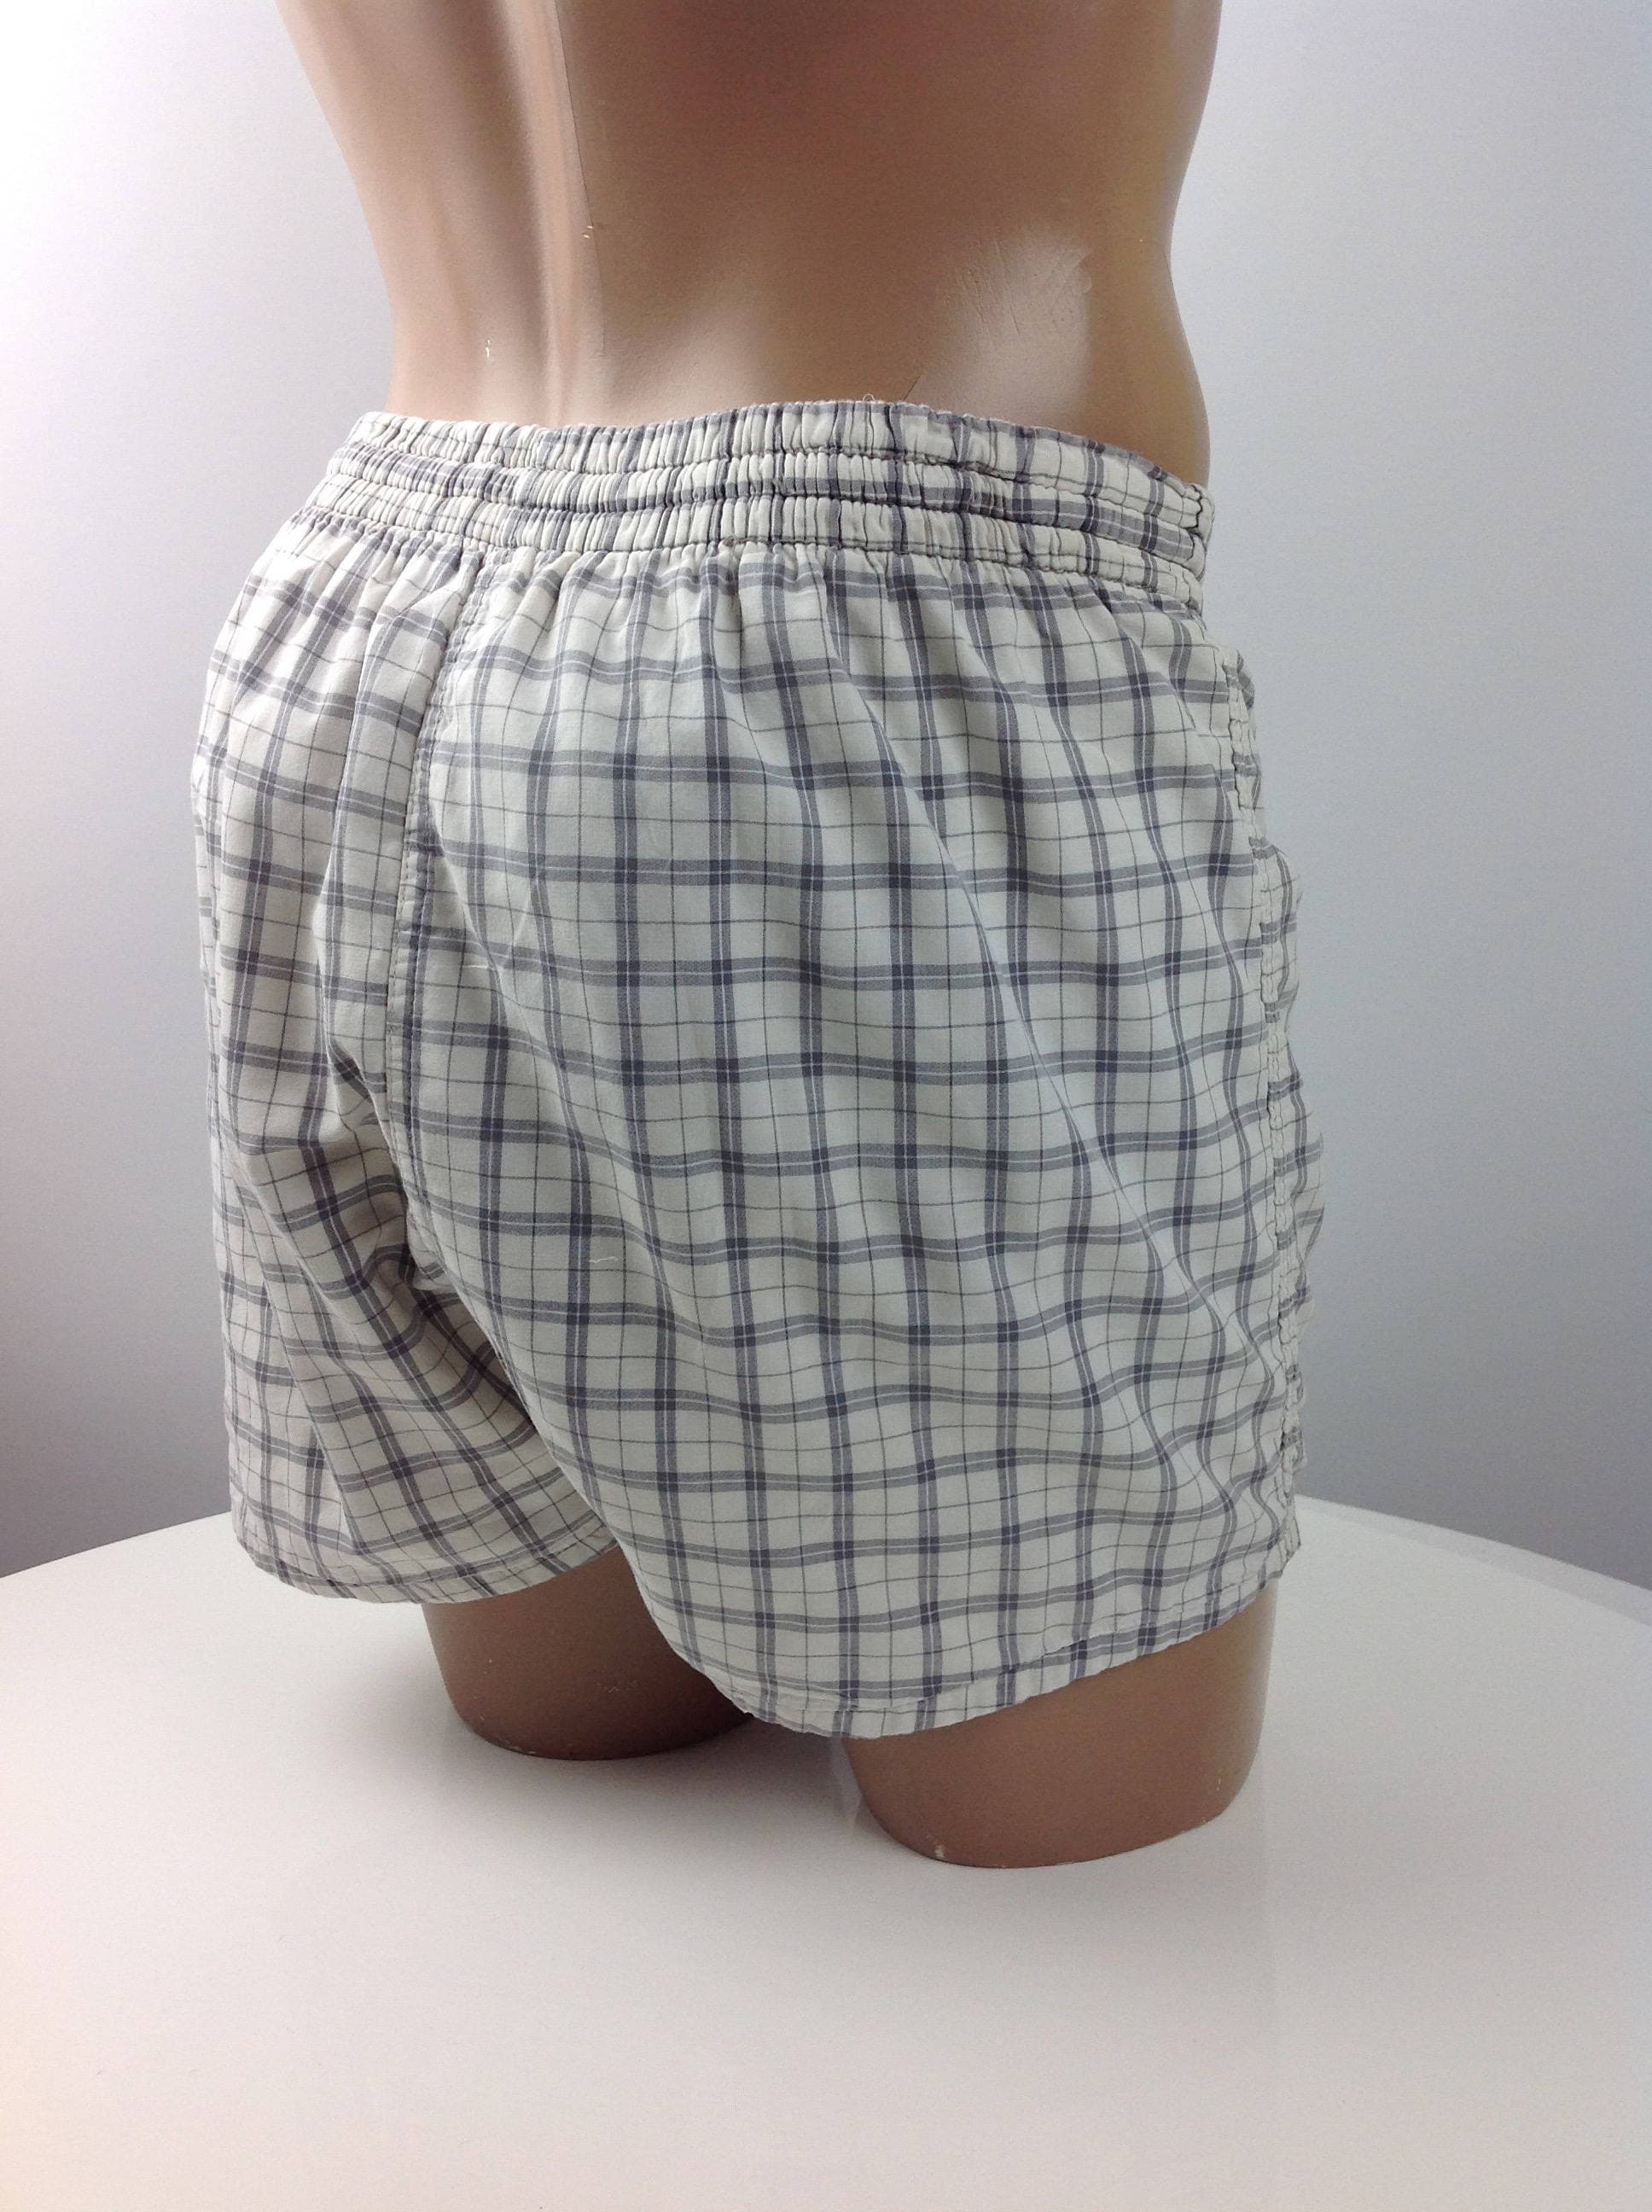 1950s Mens Suits & Sport Coats | 50s Suits & Blazers 1950s Swim Trunks - Gray  White Cotton Plaid Campus Brand Coin Pocket Lining Mens Size Medium $22.95 AT vintagedancer.com